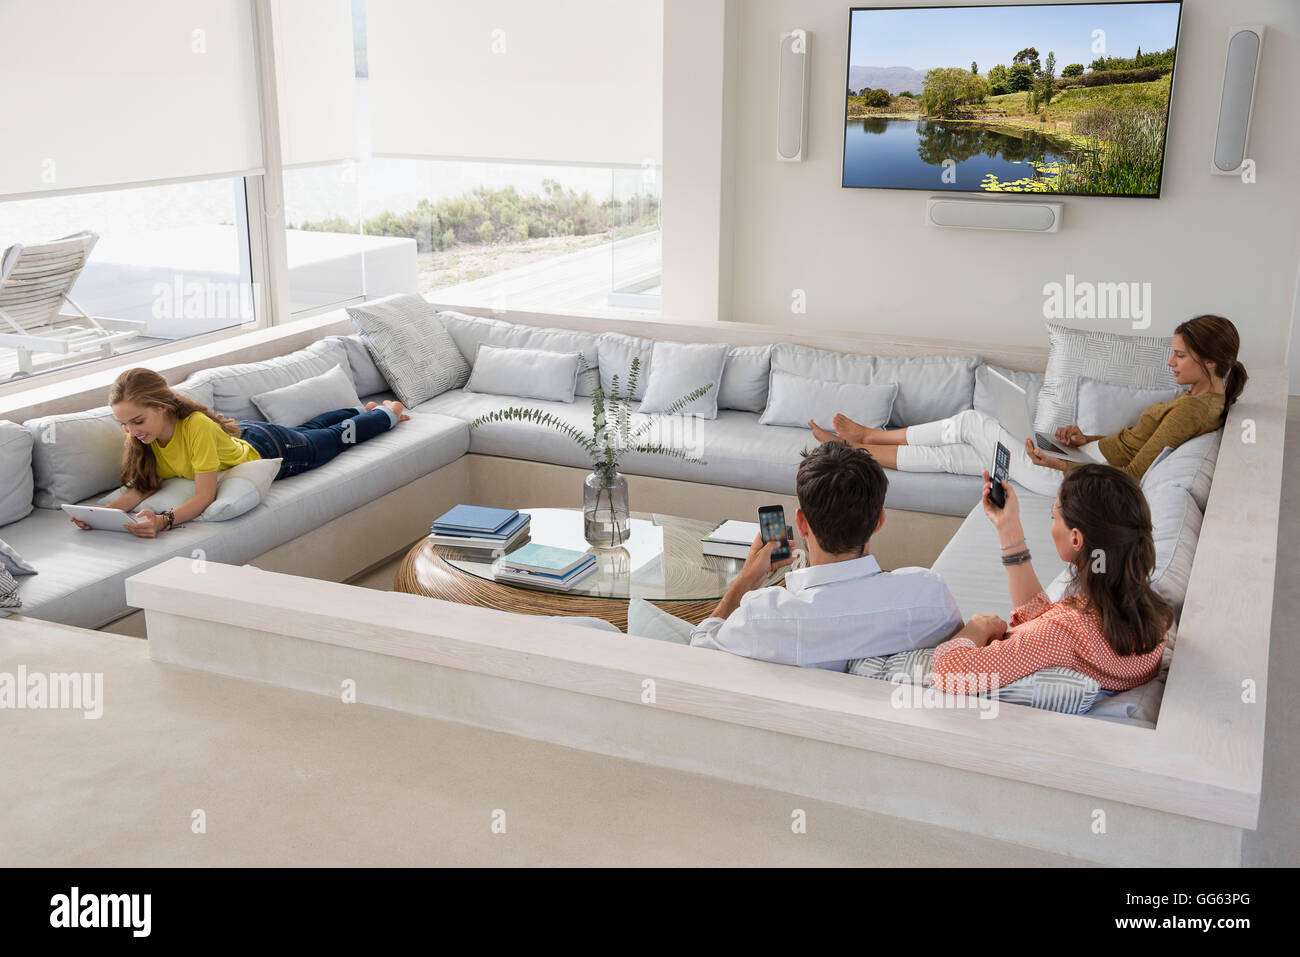 Family in living room busy in different activities Stock Photo ...